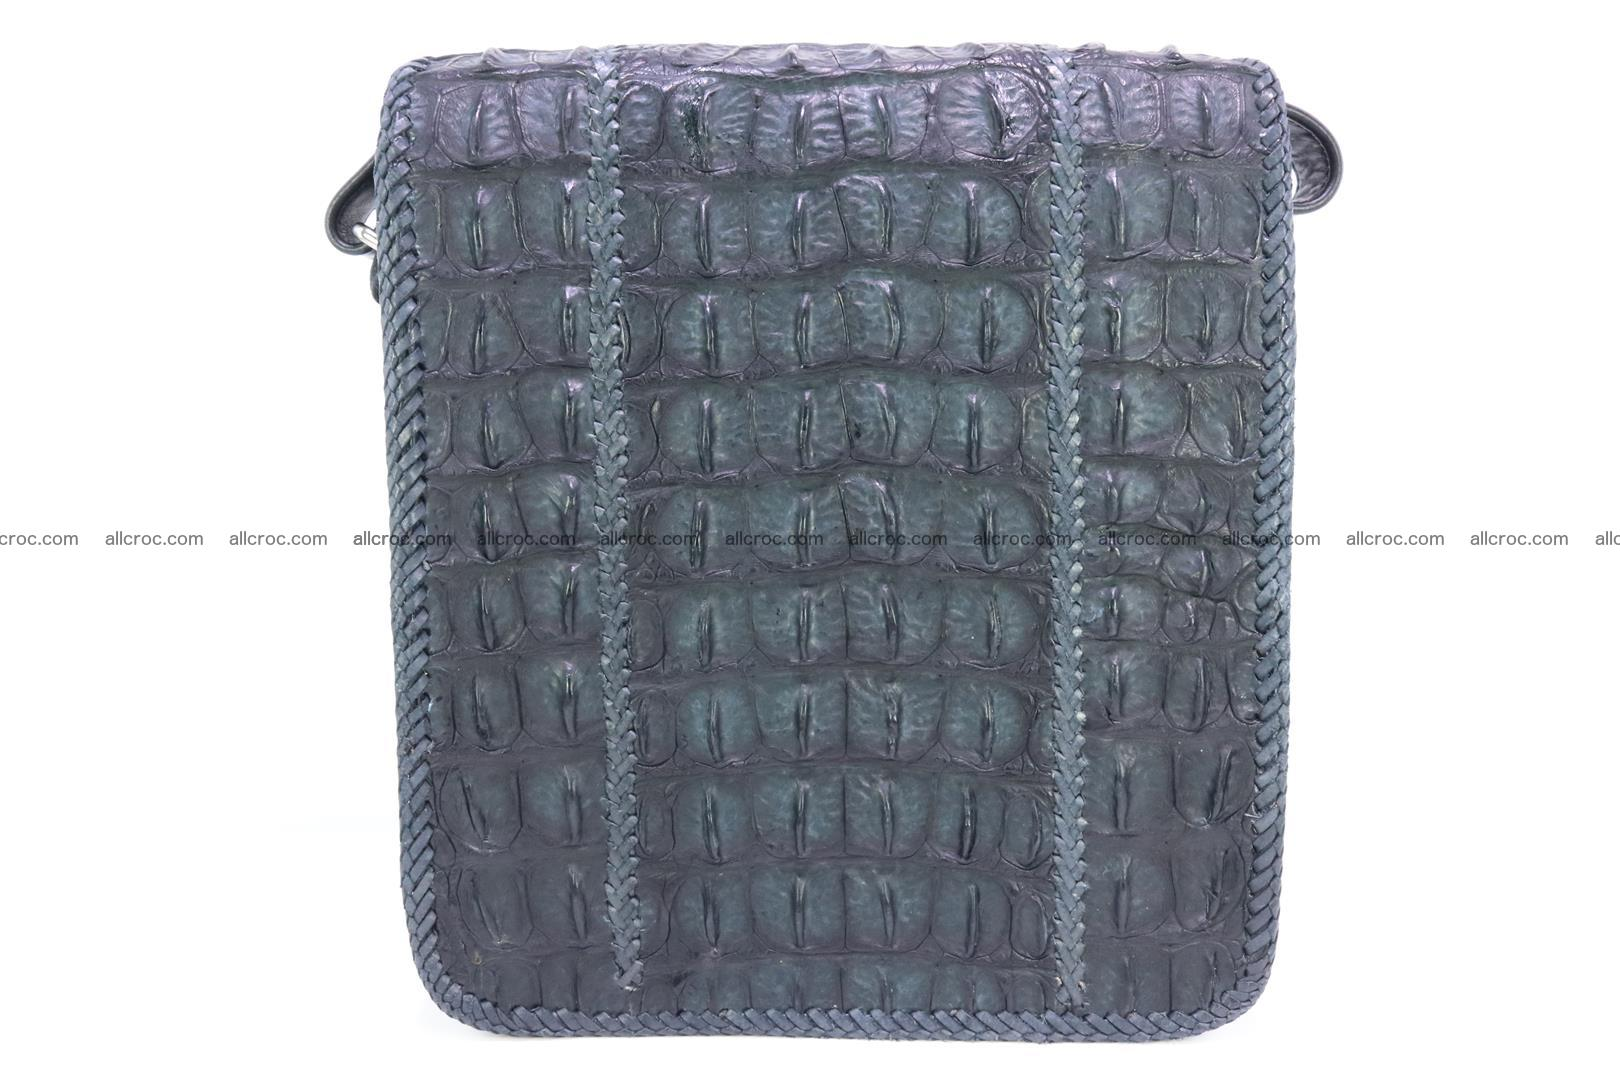 Сrocodile skin shoulder bag with braided edges 143 Foto 3